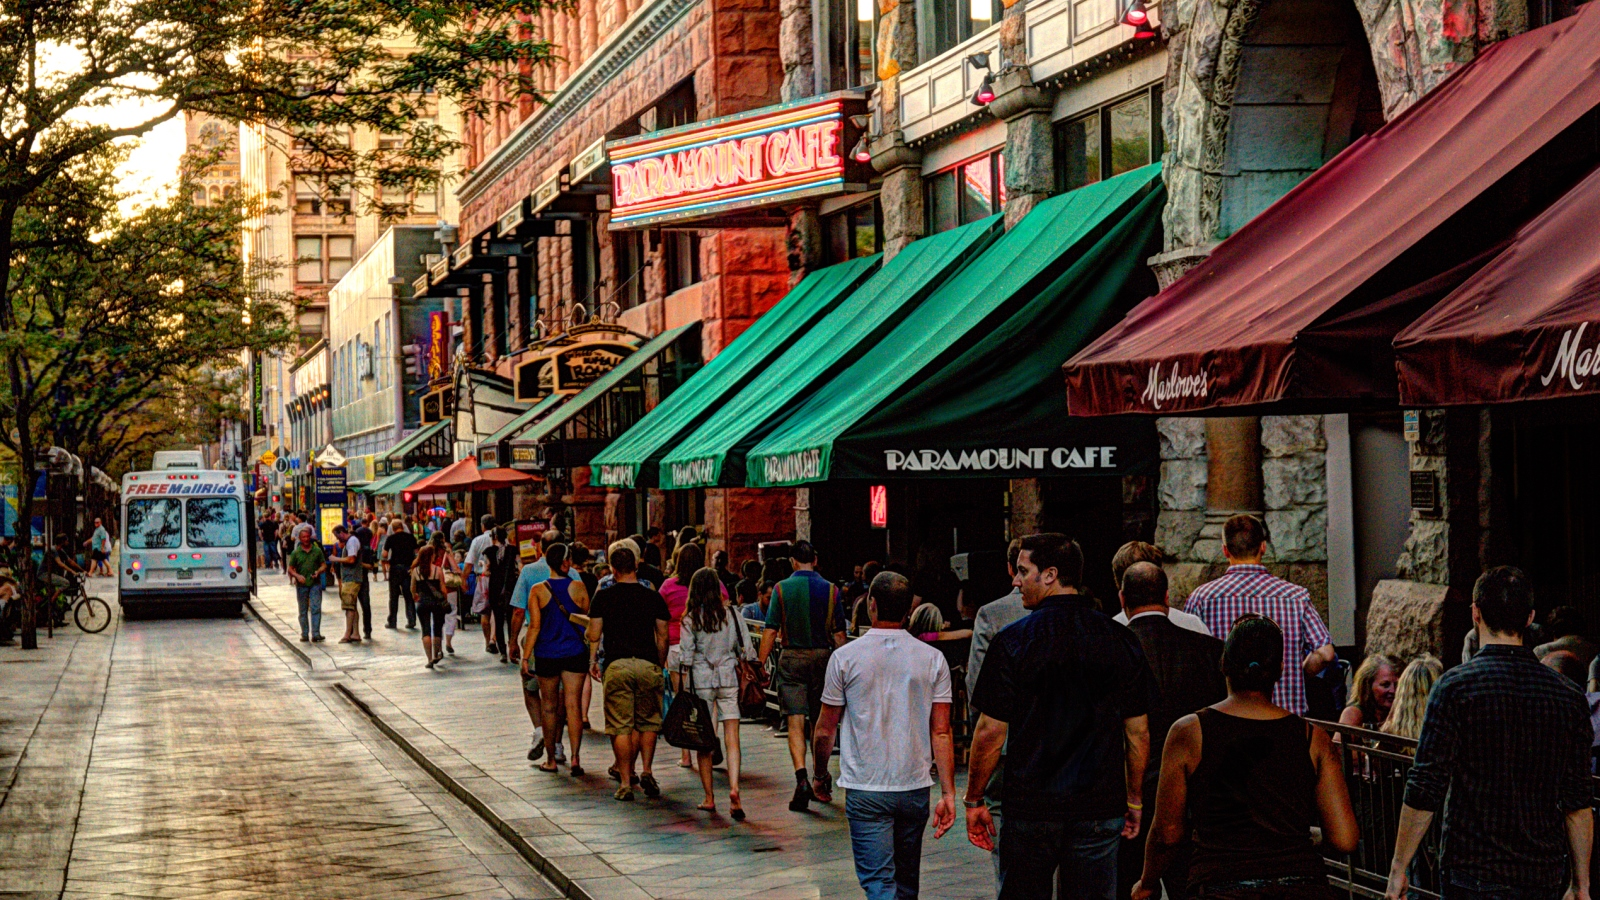 Things to Do in Denver - 16th Street Pedestrian Mall